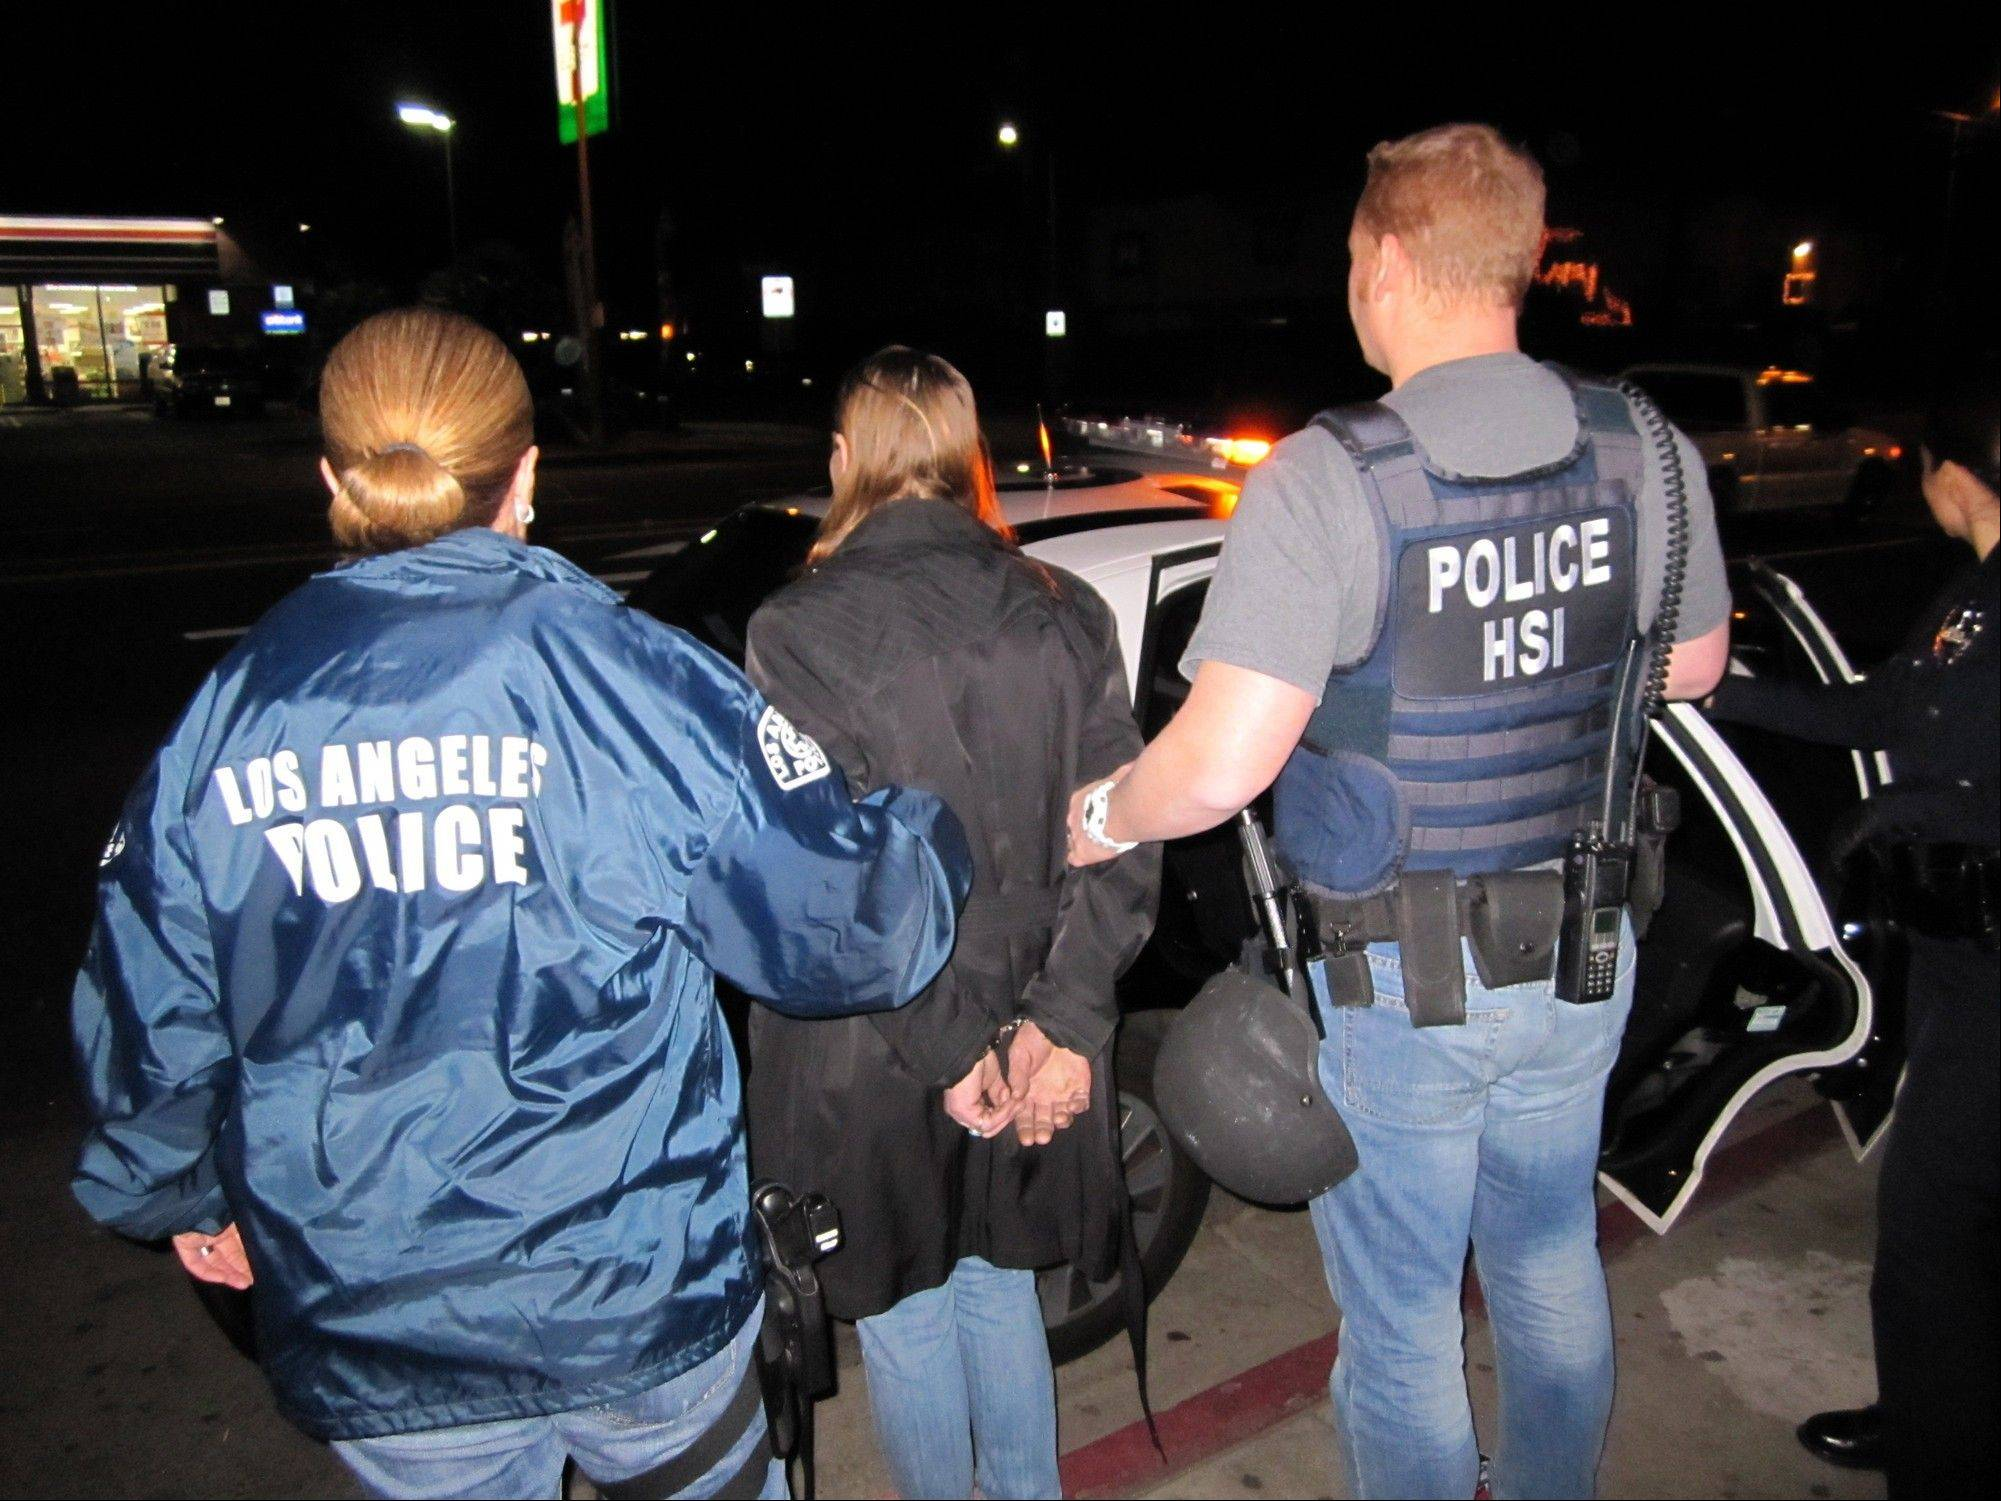 In this image provided by U.S. Immigration and Customs Enforcement (ICE), Letha Mae Montemayor, is arrested Thursday on suspicion of child pornography charges.